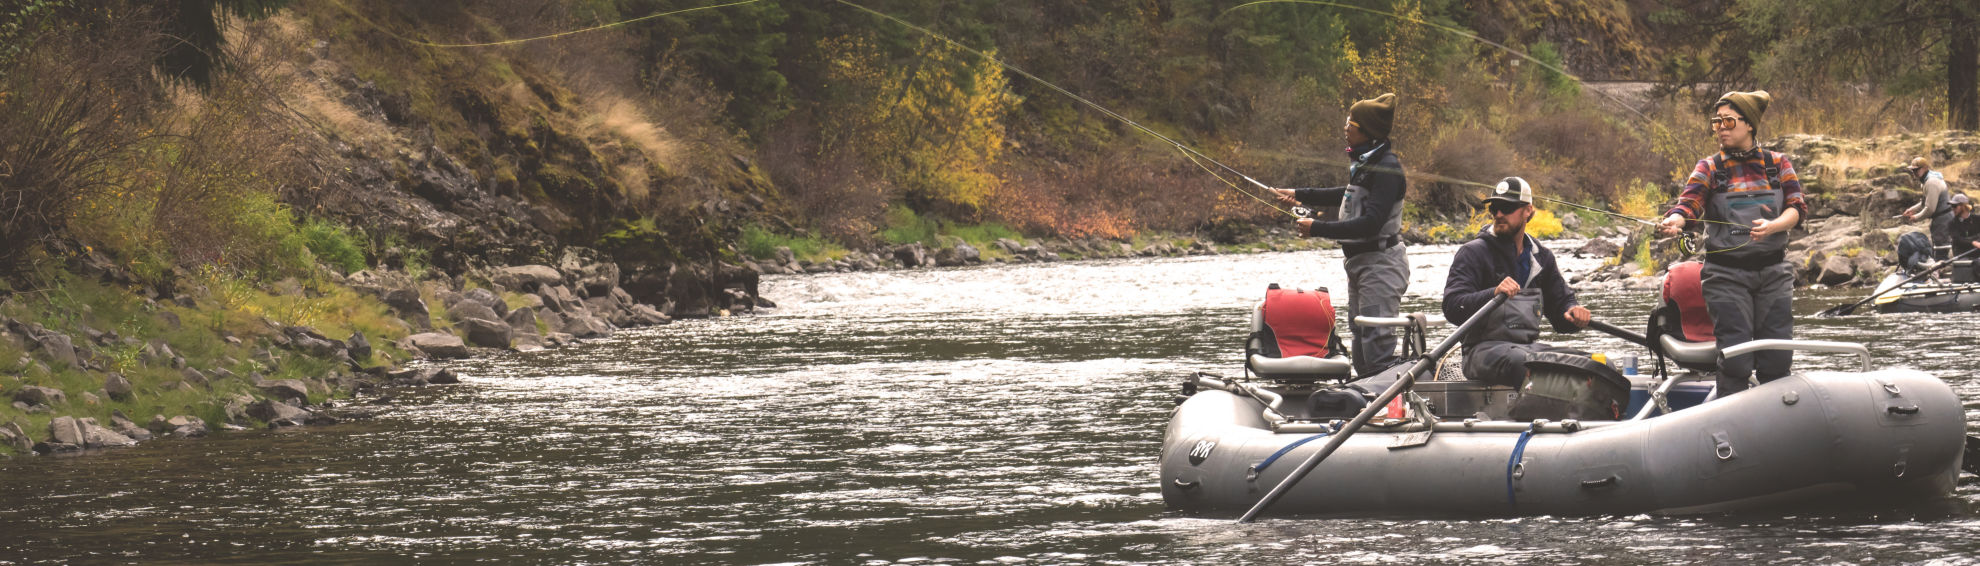 Two anglers cast from a raft on the Yamhill River in Oregon.